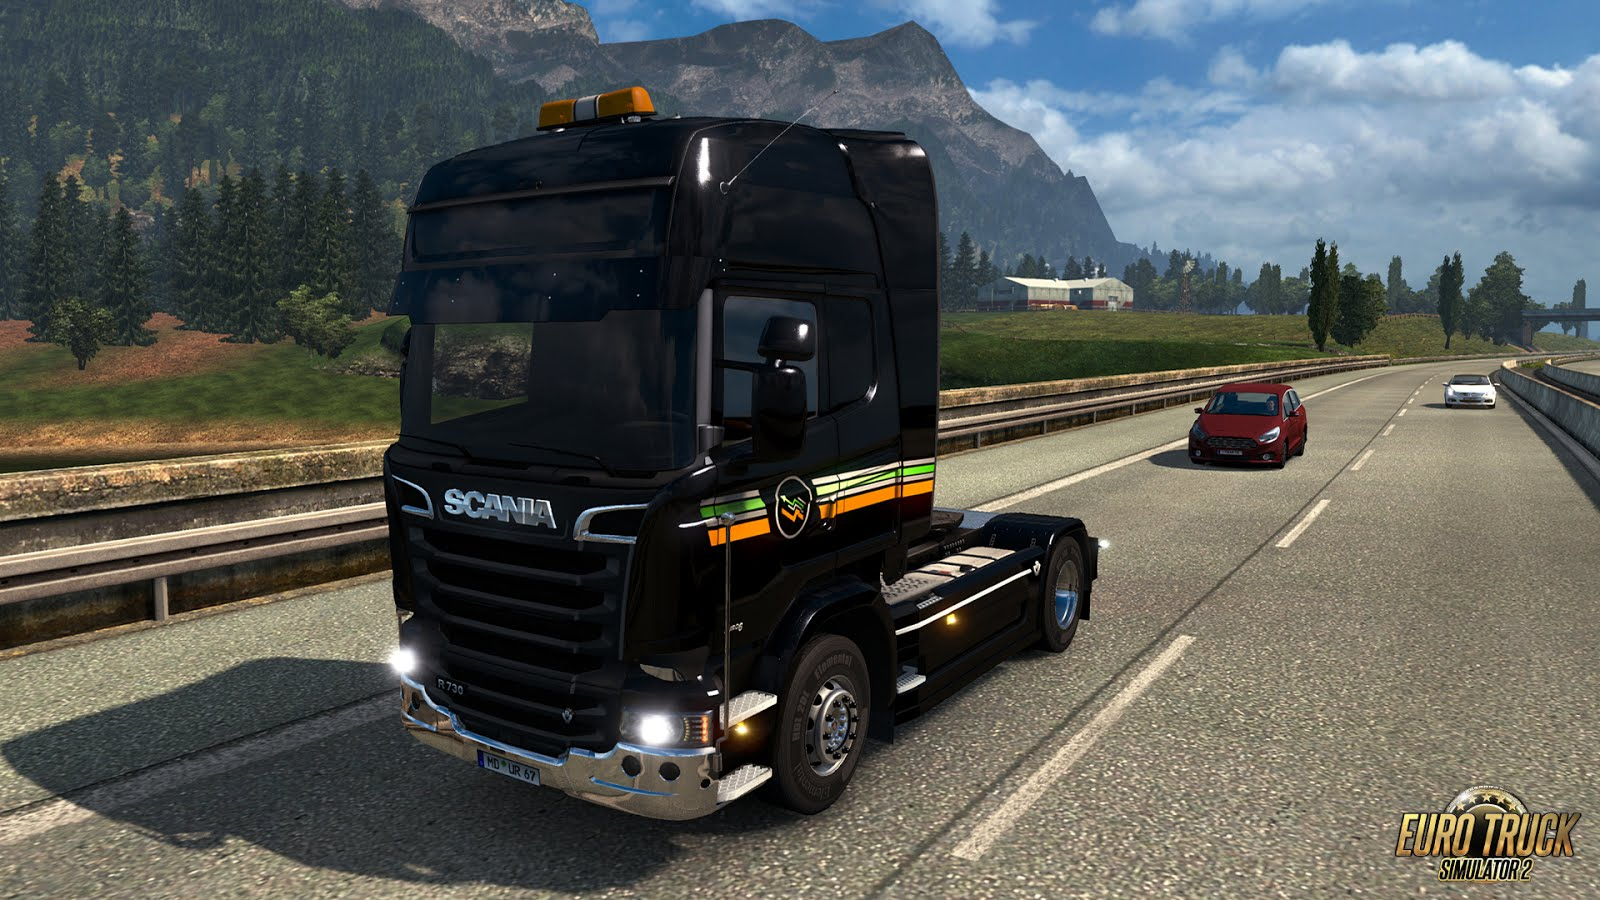 scs software 39 s blog euro truck simulator 2 company paintjobs. Black Bedroom Furniture Sets. Home Design Ideas